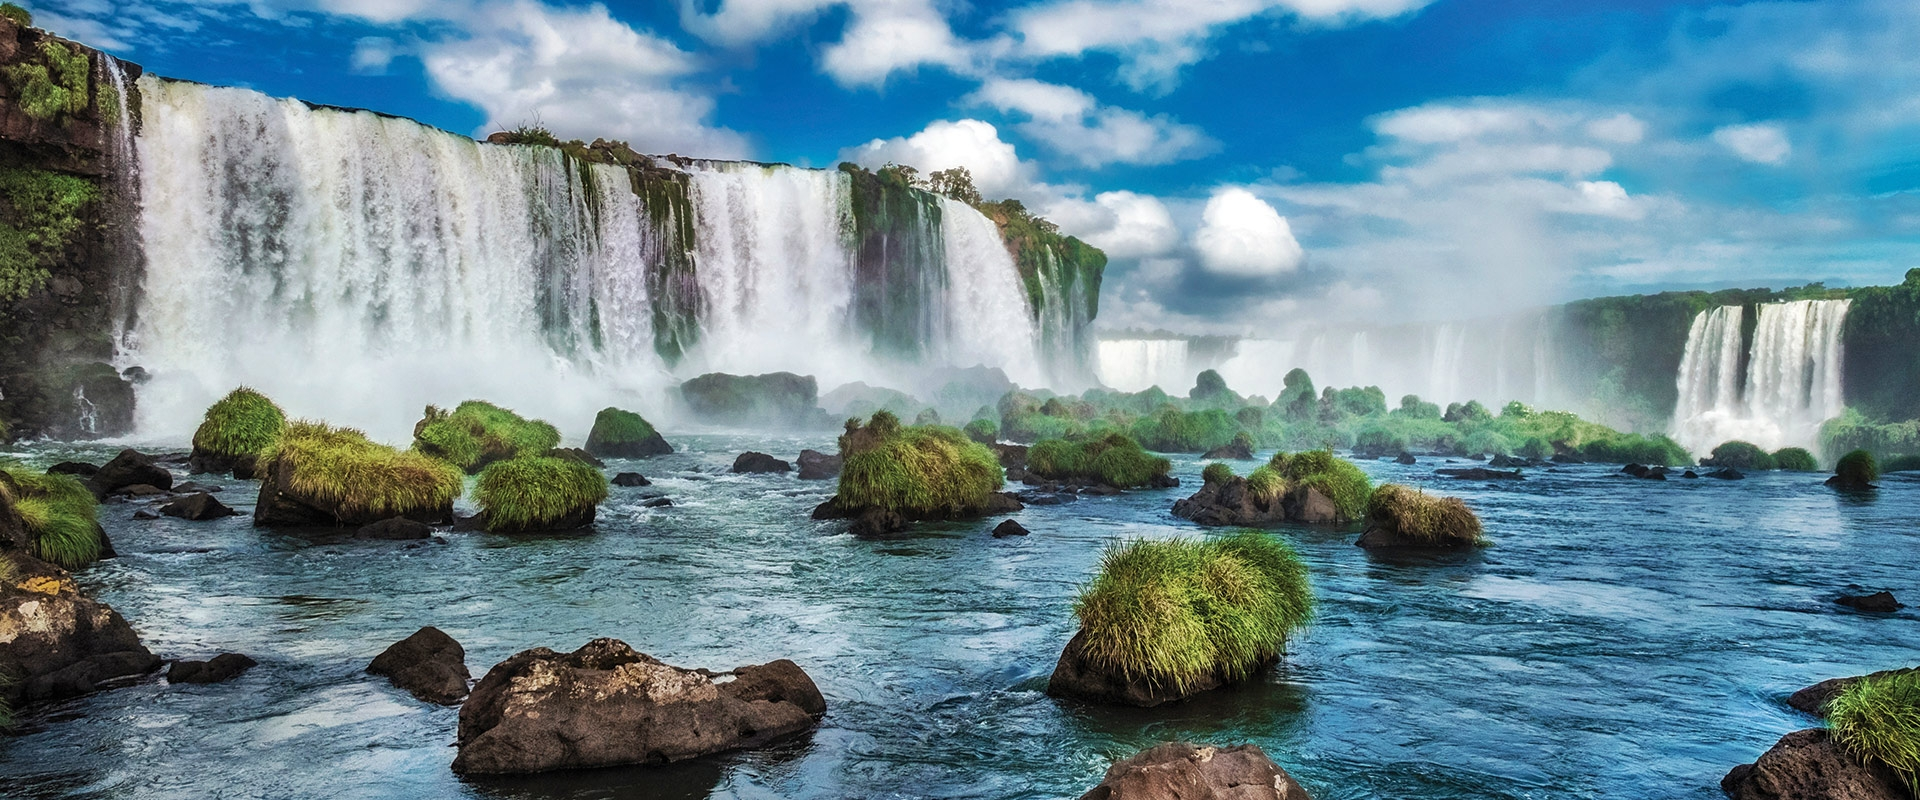 Patagonia South America >> Best Of South America With Patagonia Chilean Fjords Cruise 2020